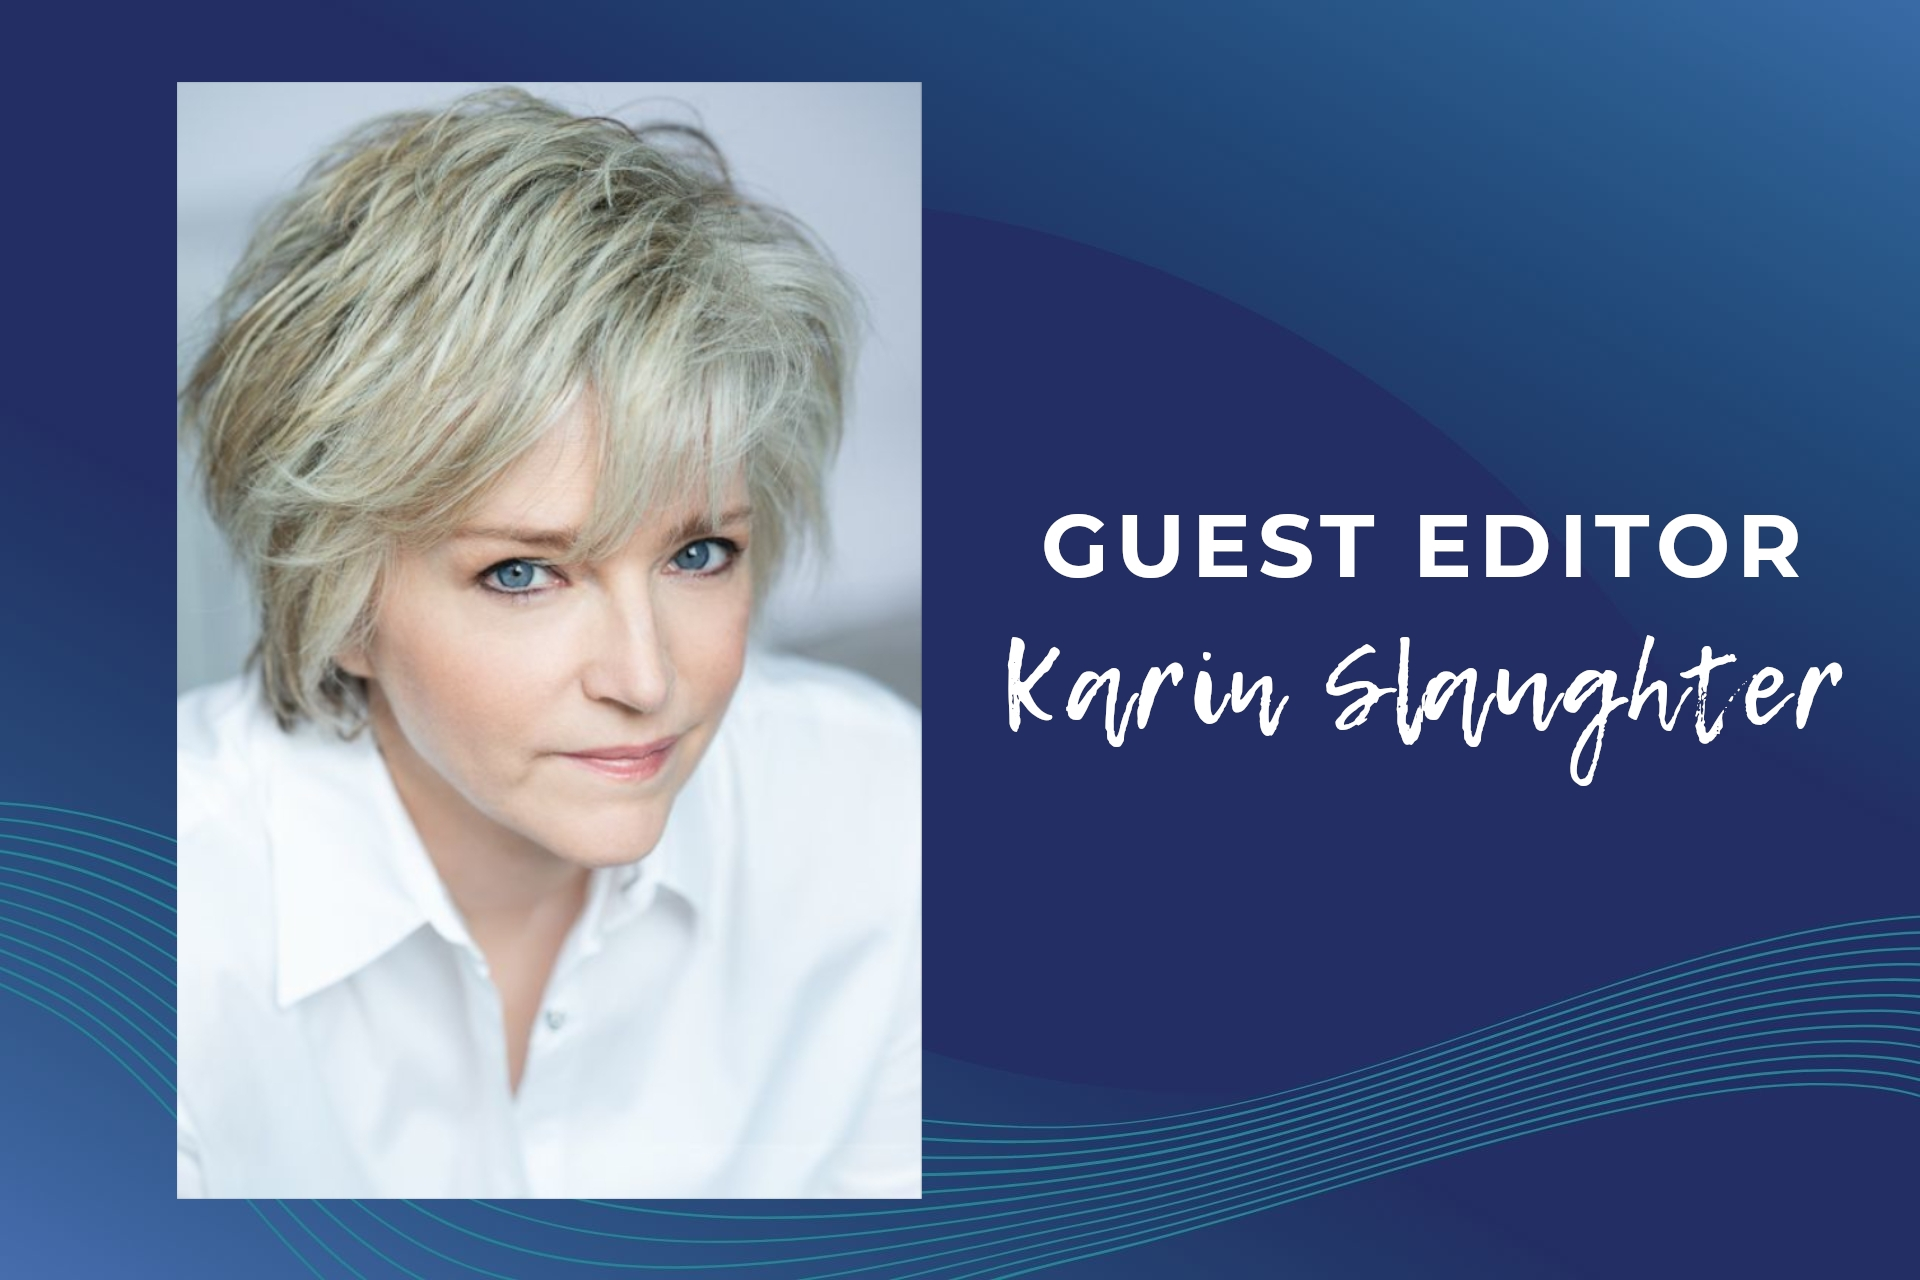 Guest Editor, Early Summer 2021 - Karin Slaughter